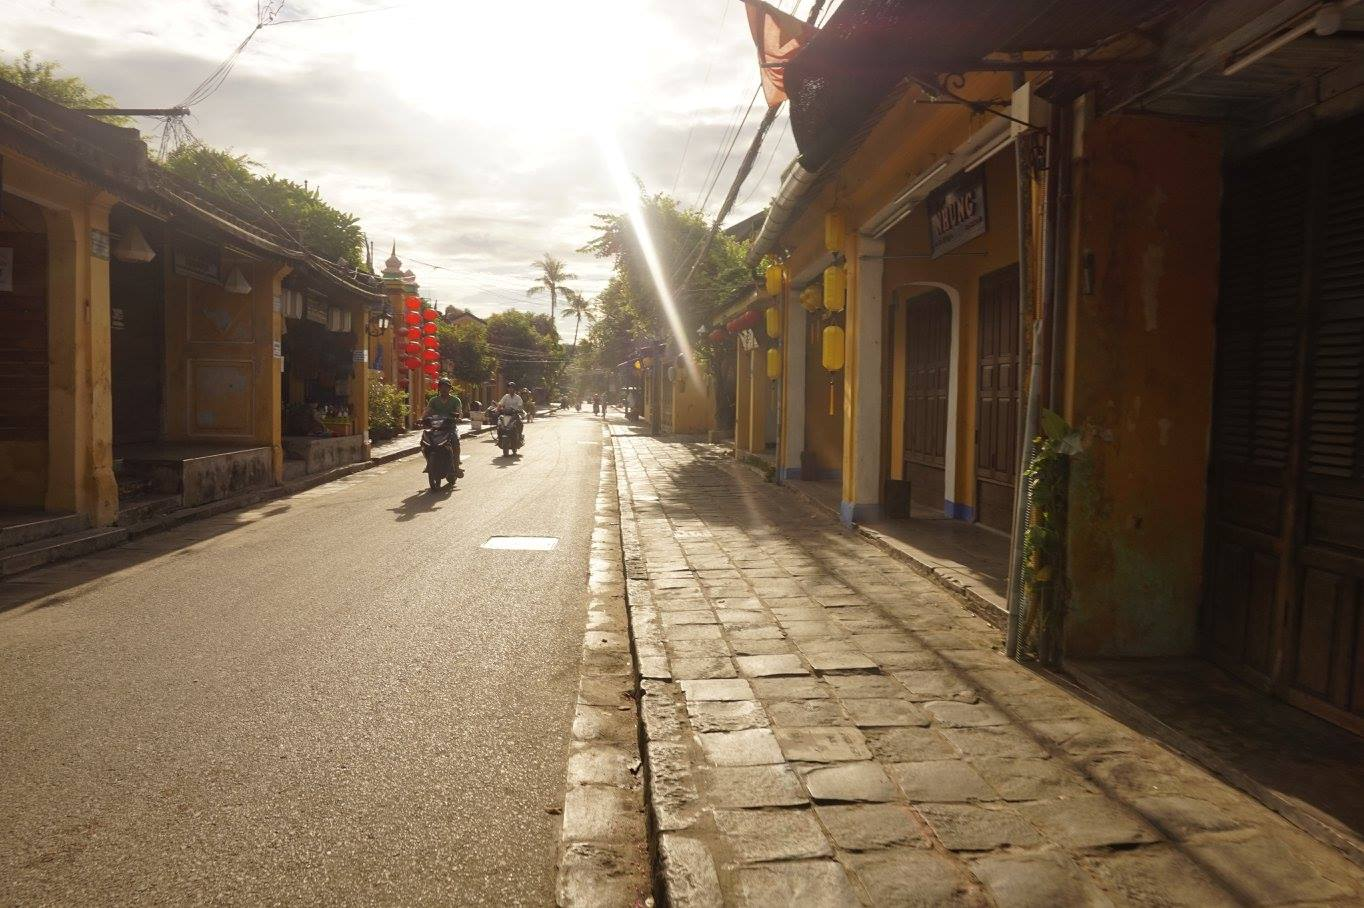 ancient houses in Hoi An